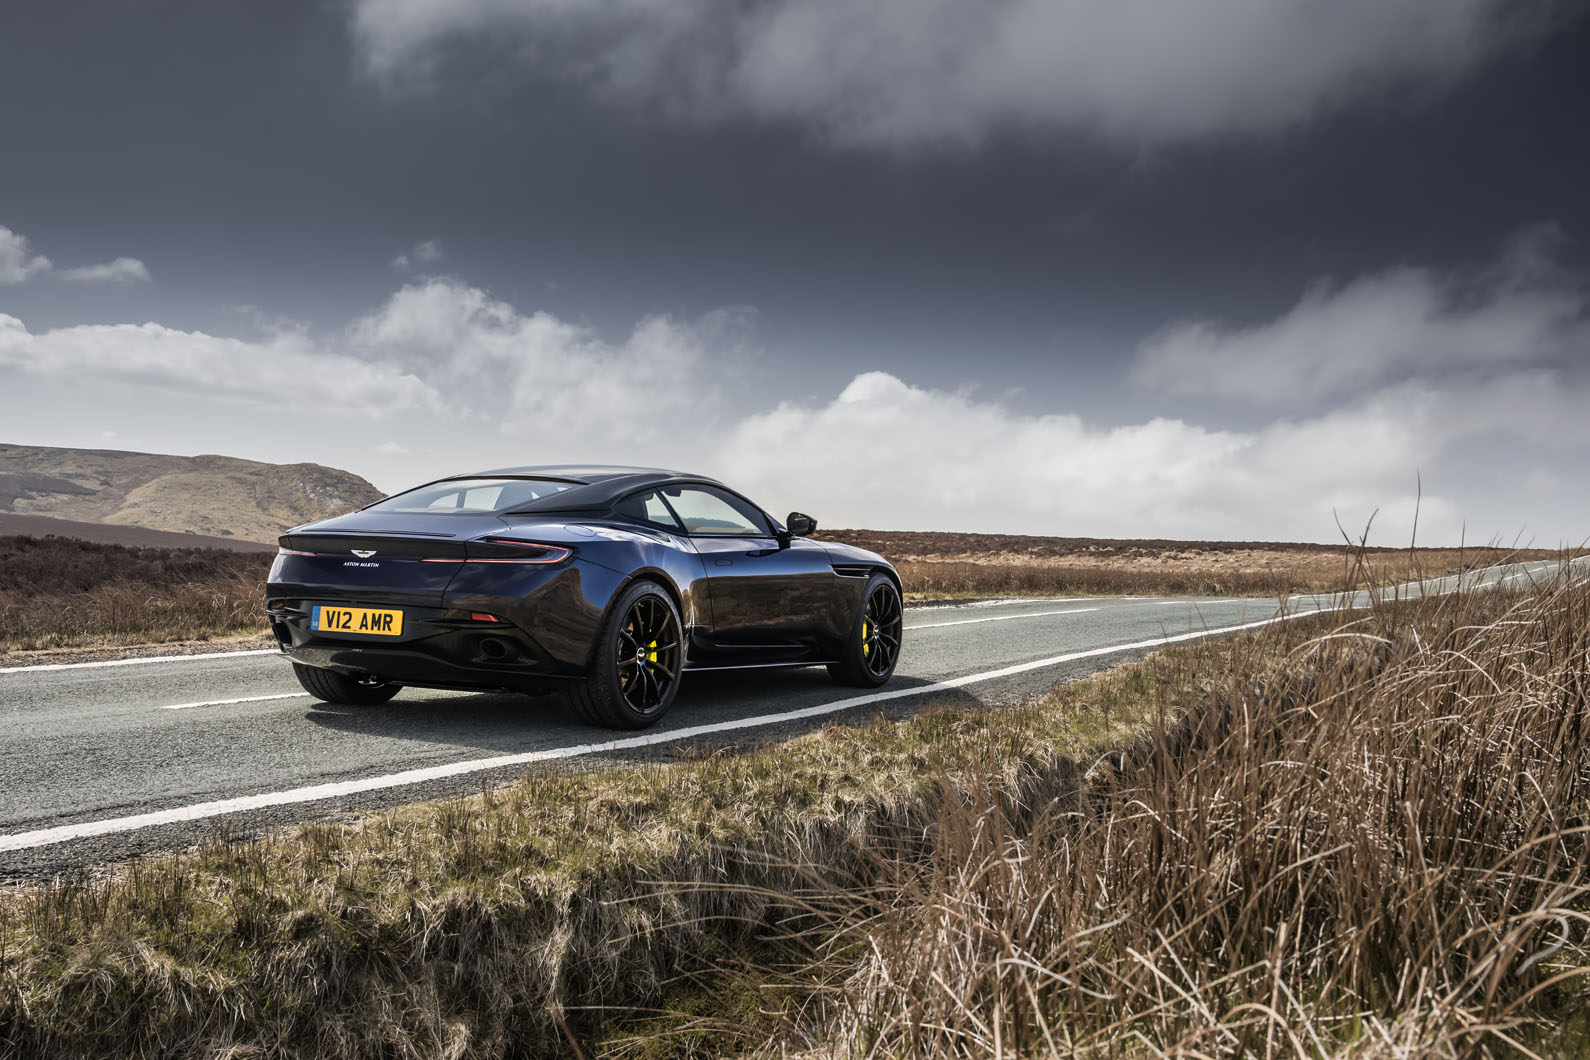 Aston Martin DB11 AMR launched with 630bhp V12